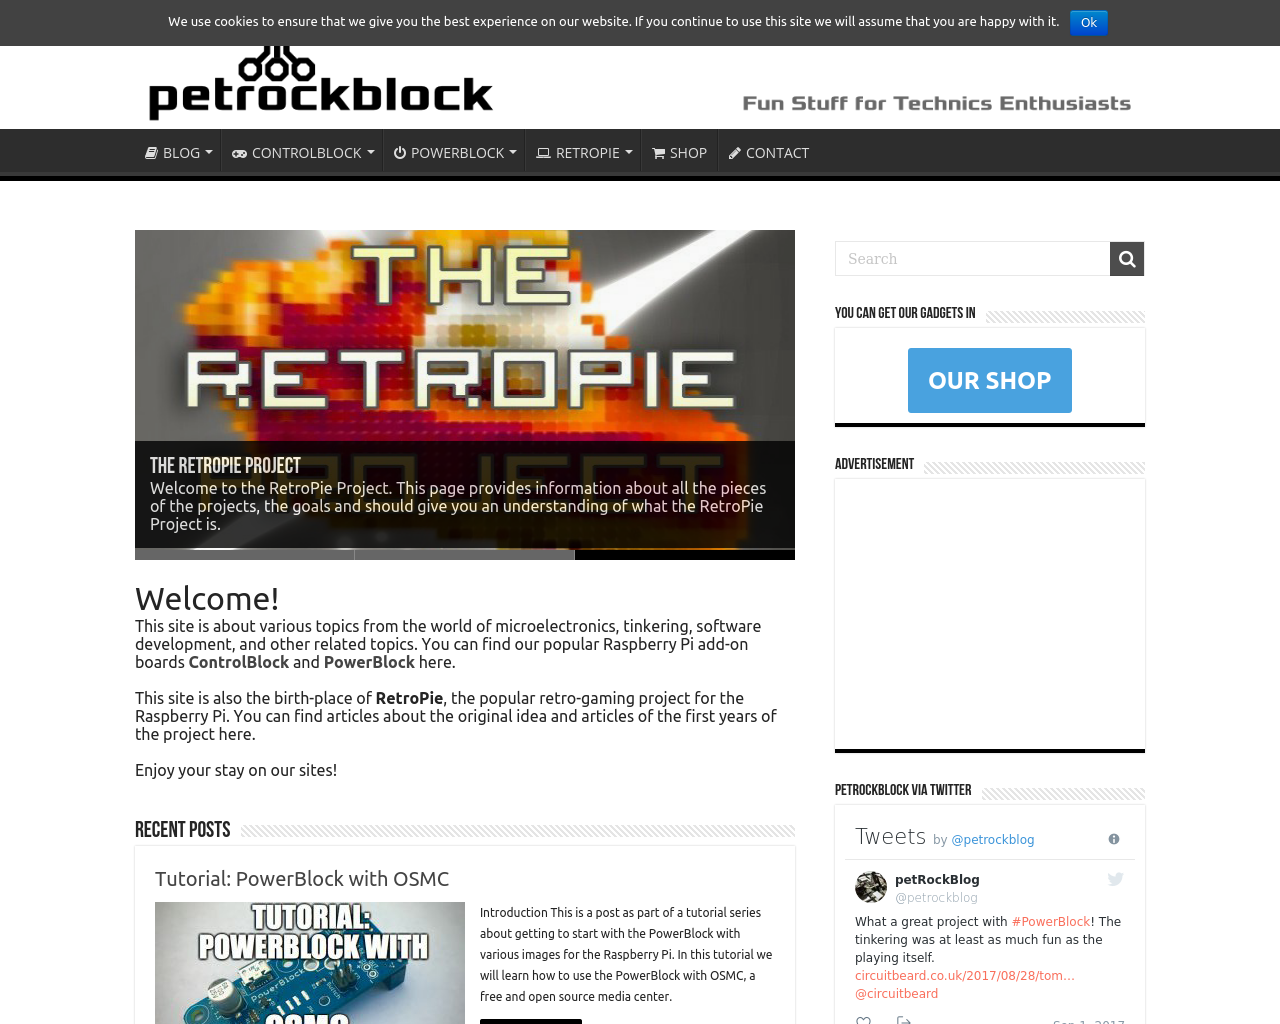 PetRockBlog-Advertising-Reviews-Pricing